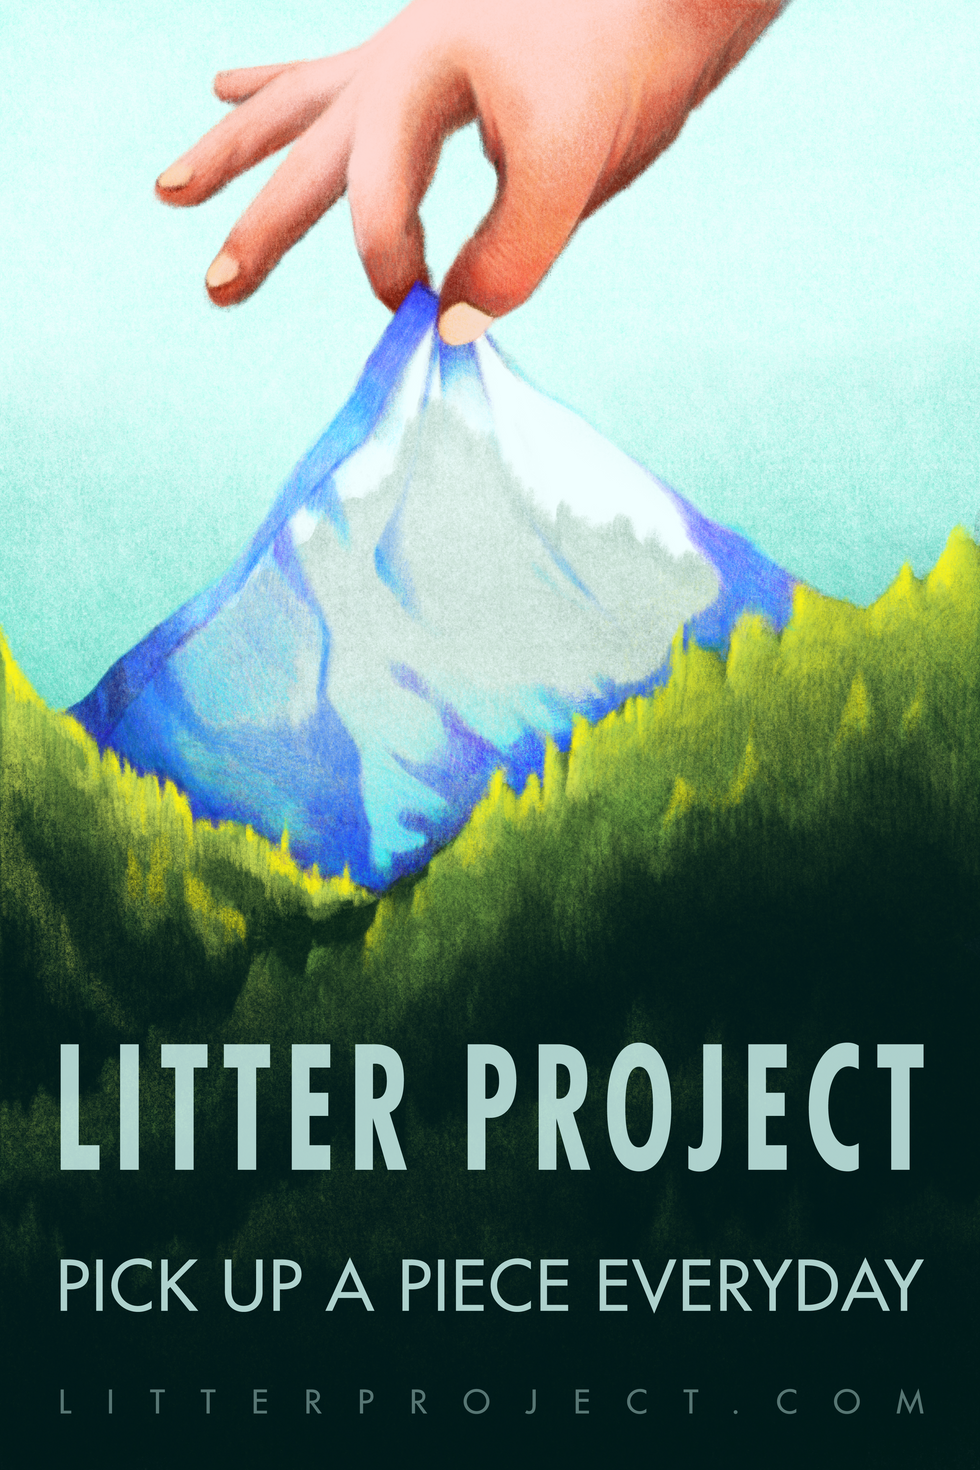 Litter Project